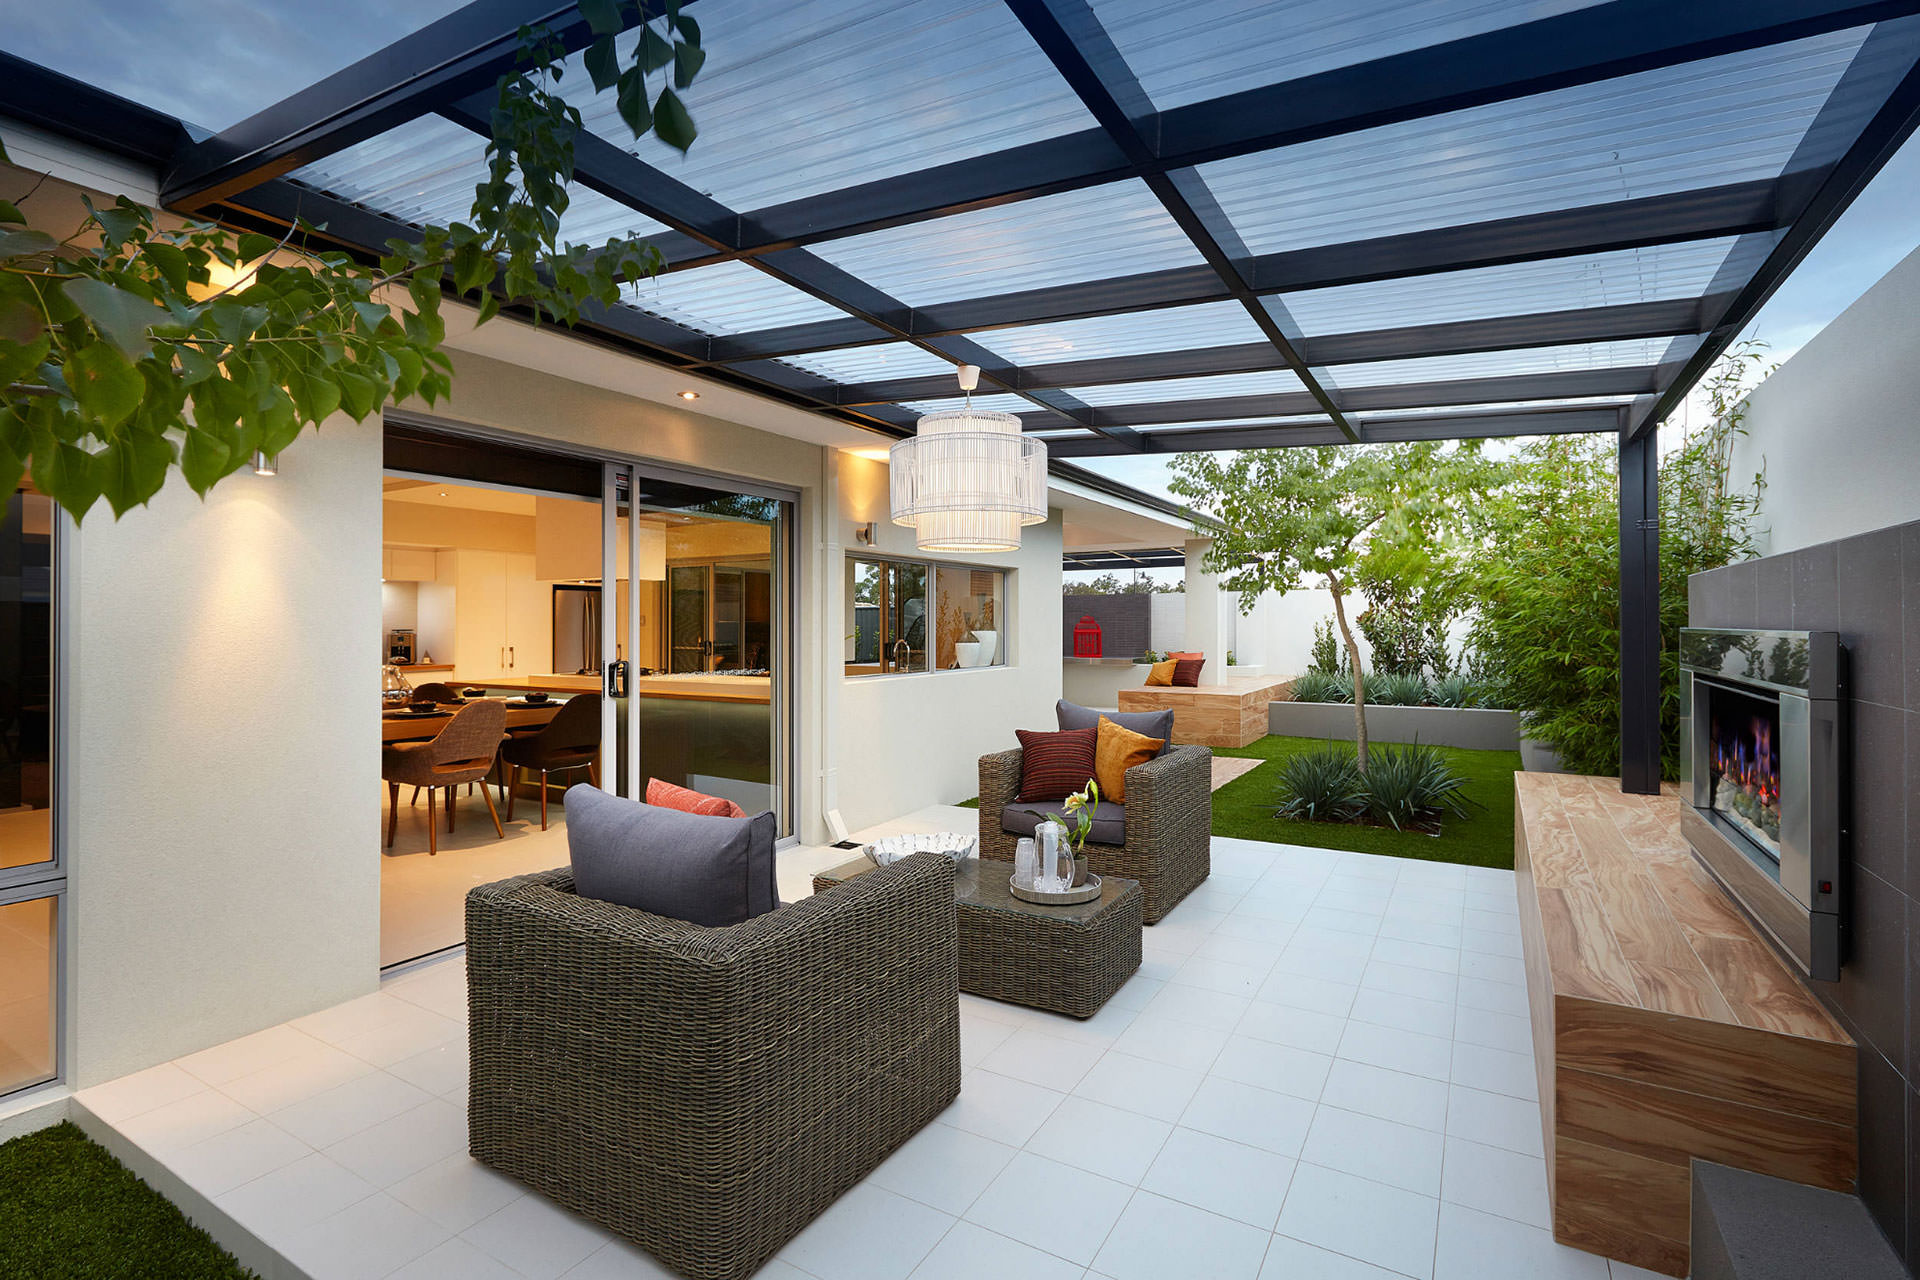 Pergola Plexiglas Pergola Roof Ideas What You Need To Know Shadefx Canopies